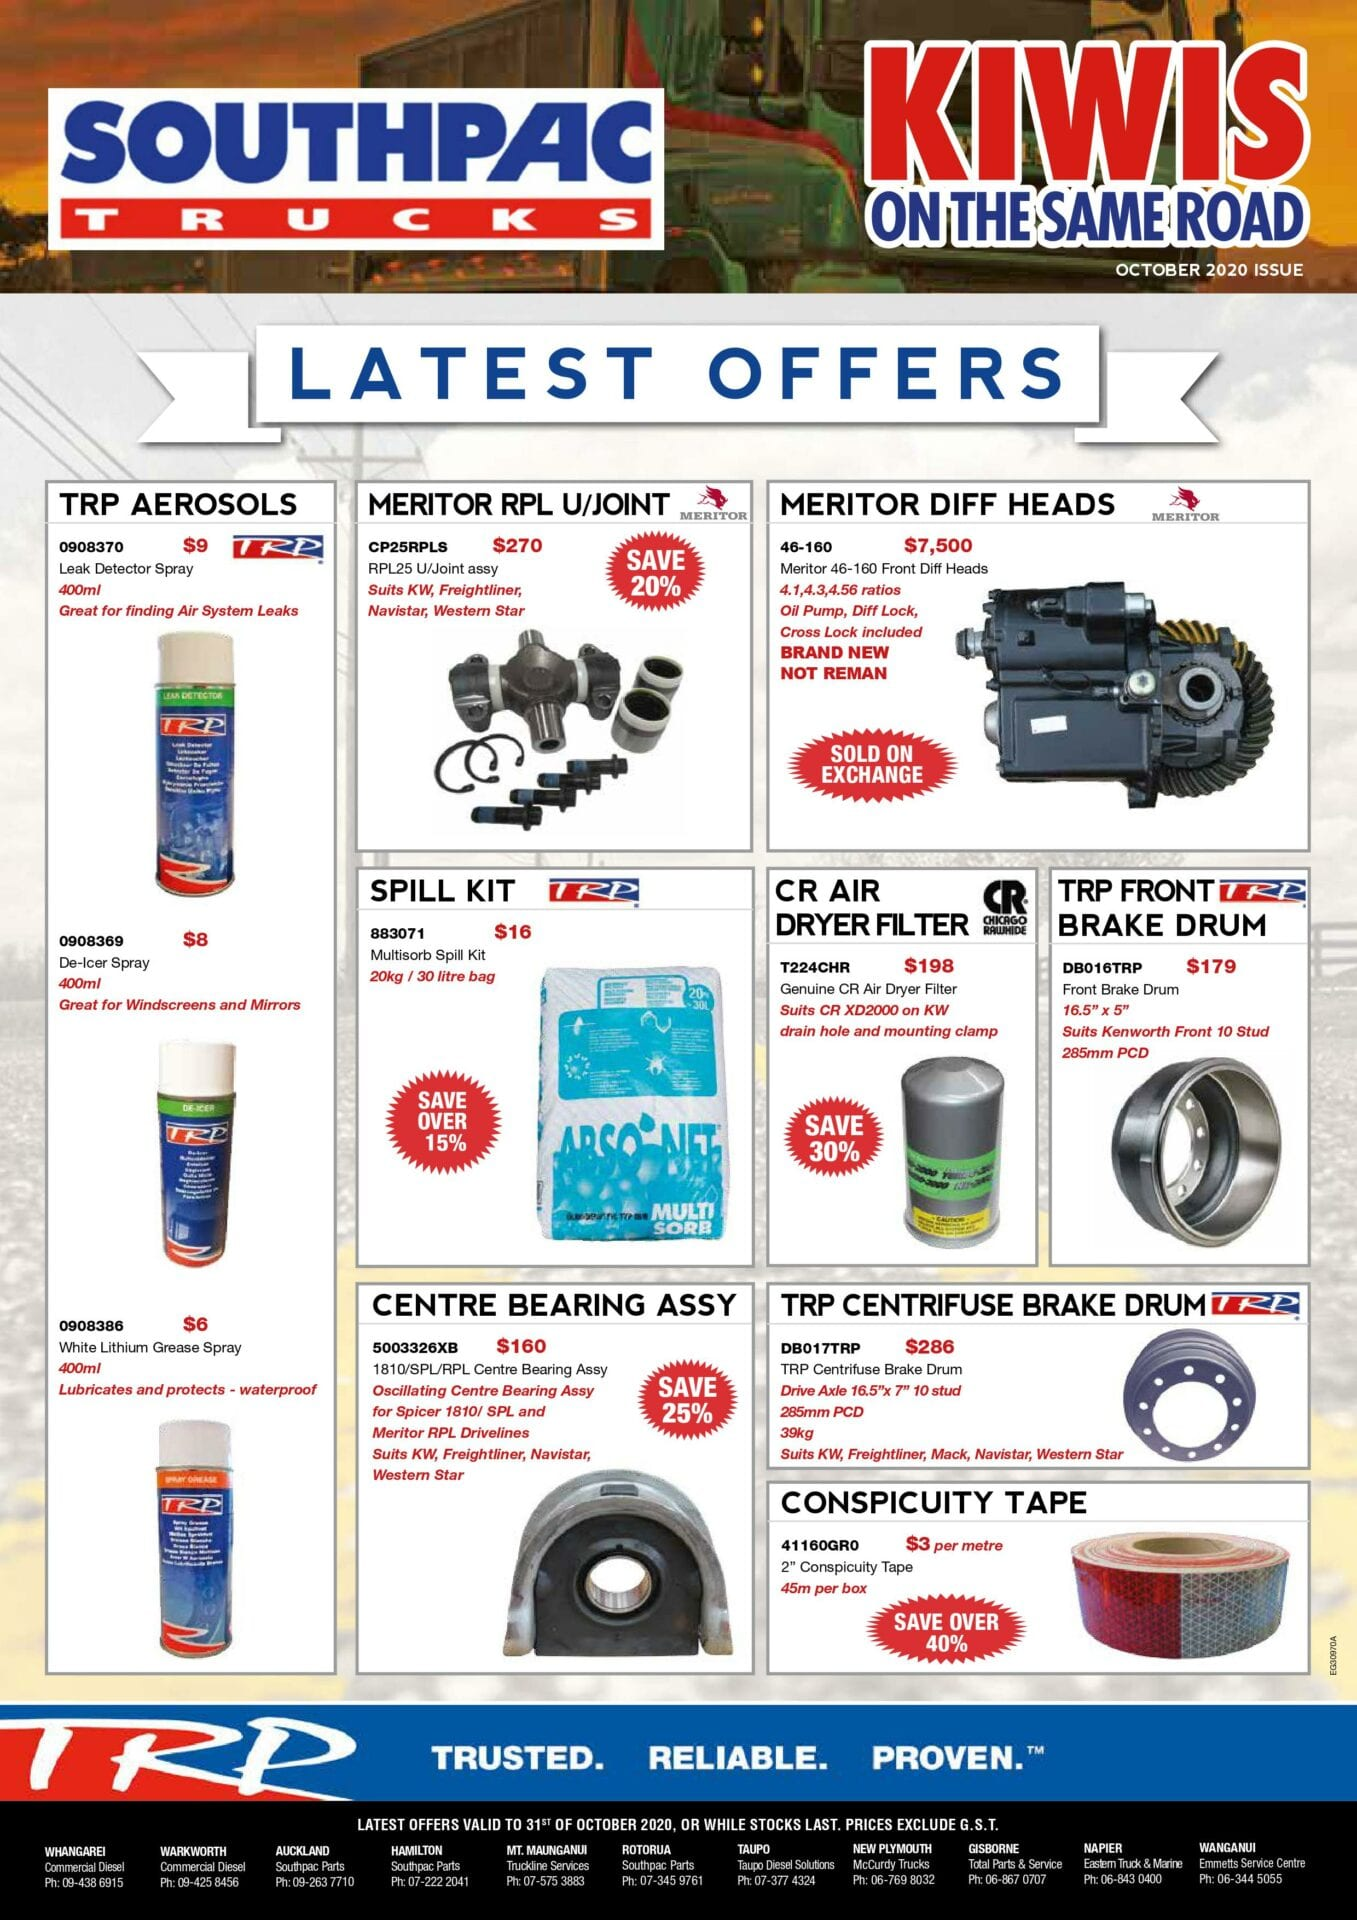 LATEST OFFERS advert – October 2020 (pg1)